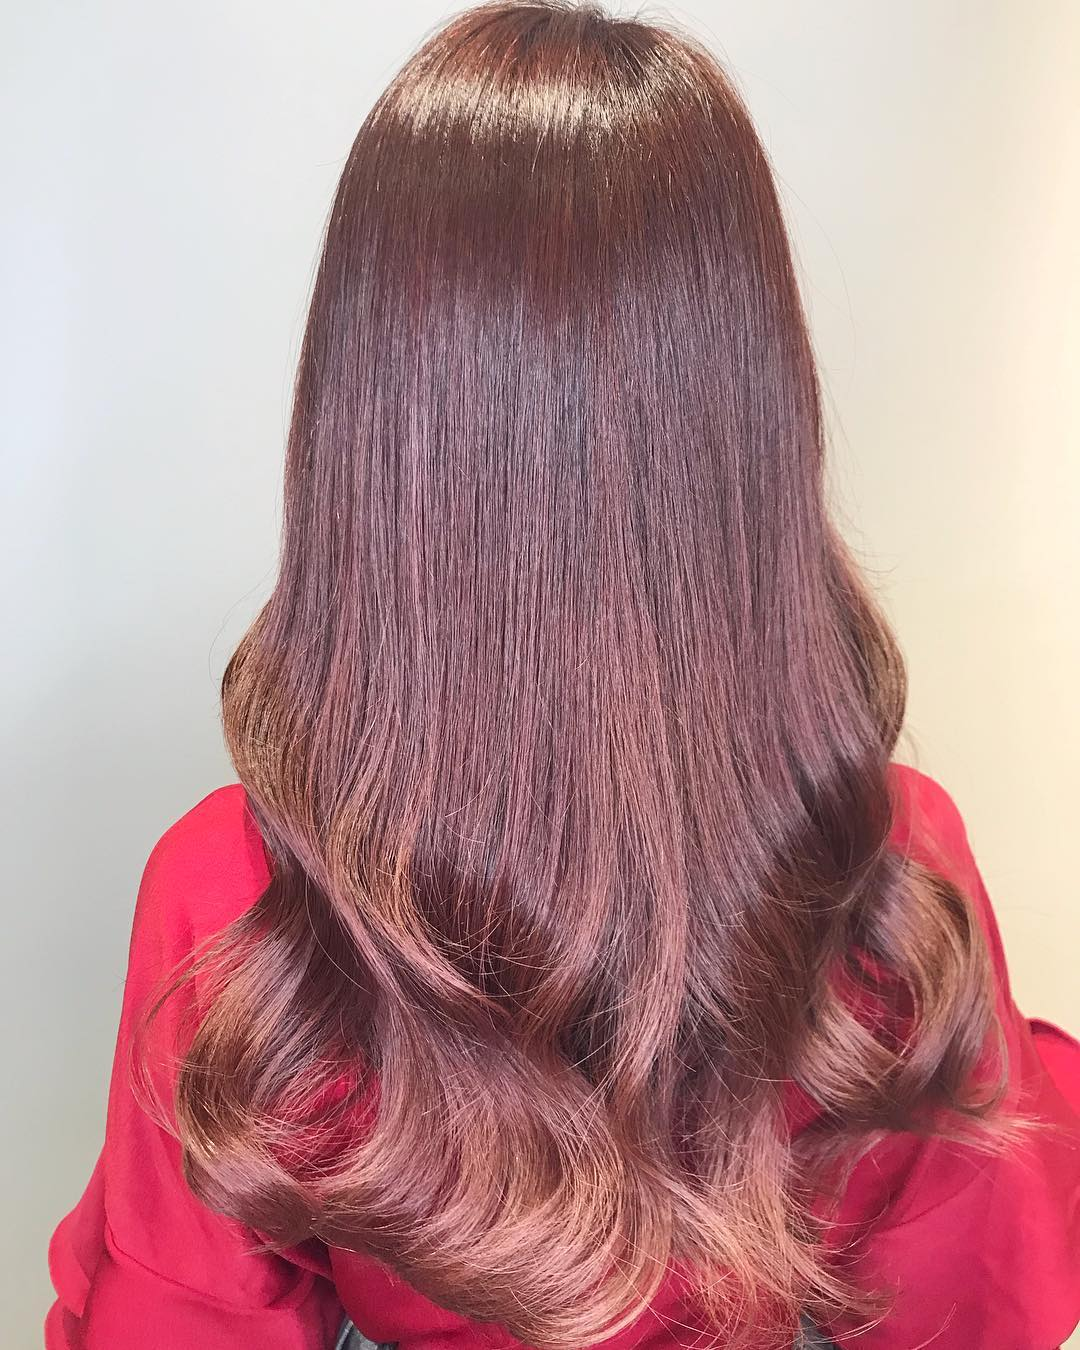 Red Hair Colour by Ken from Threes